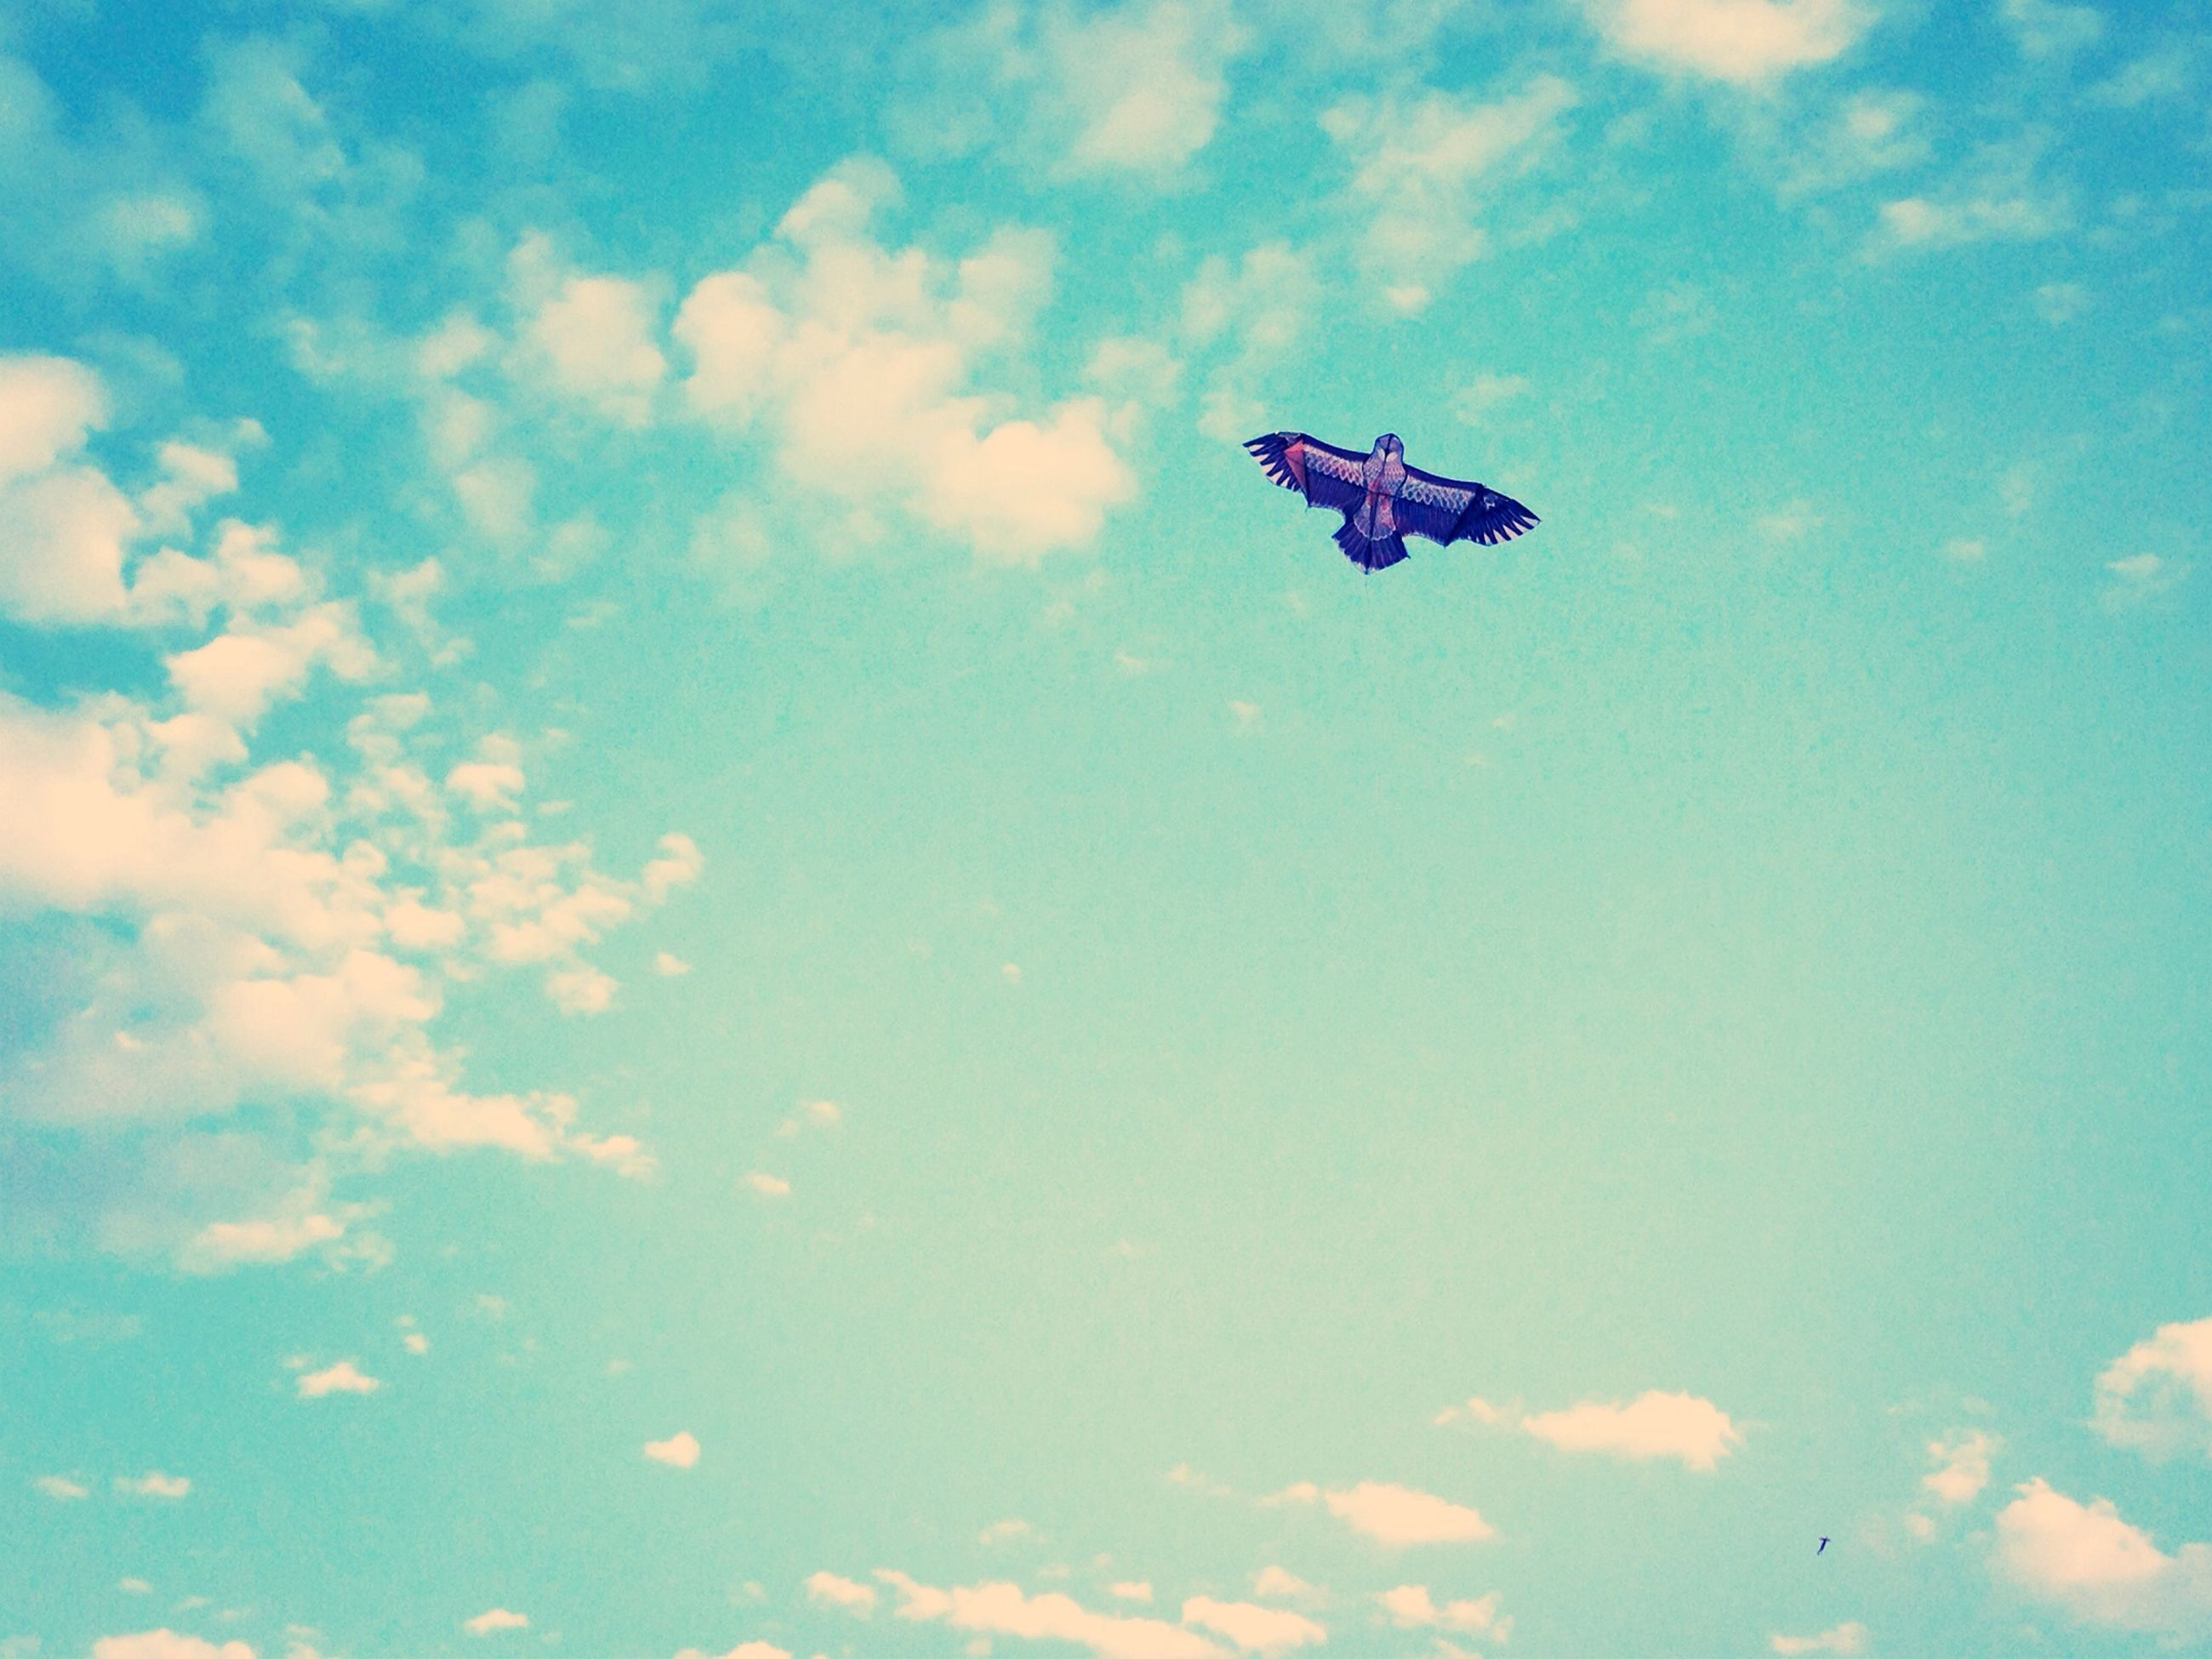 flying, low angle view, blue, mid-air, sky, cloud - sky, nature, transportation, day, freedom, cloud, outdoors, beauty in nature, airplane, air vehicle, on the move, motion, no people, airshow, mode of transport